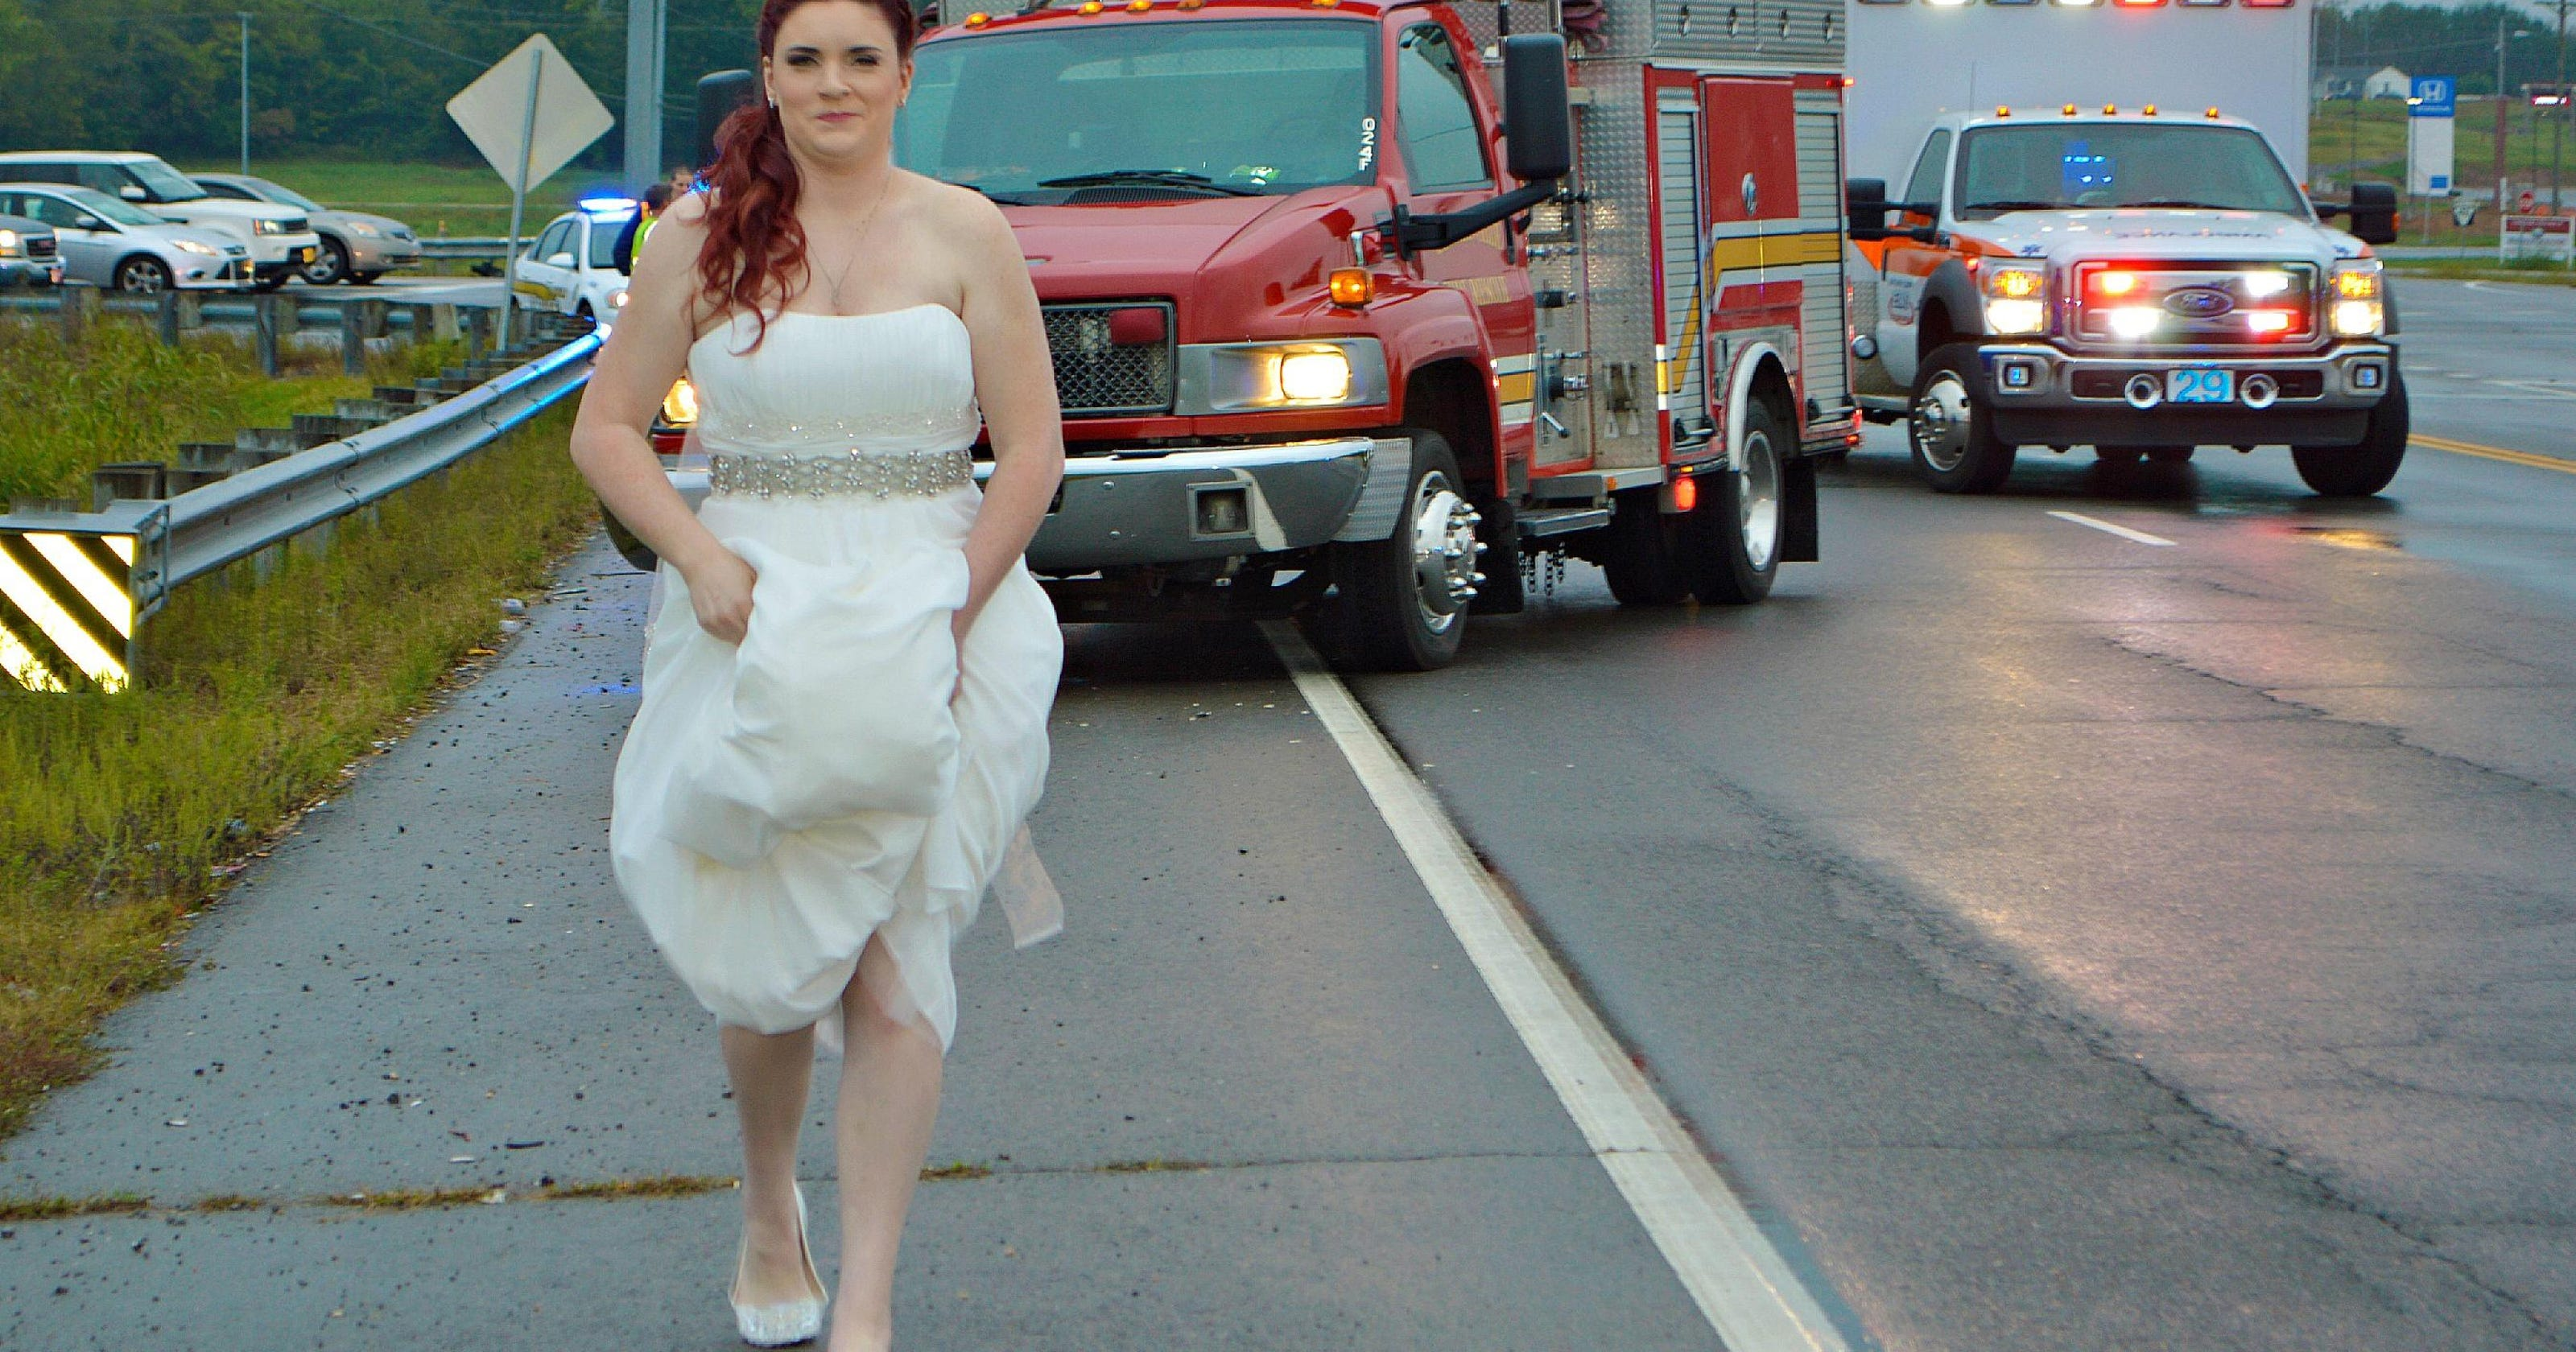 The week's odd news: Paramedic in wedding dress works crash on way